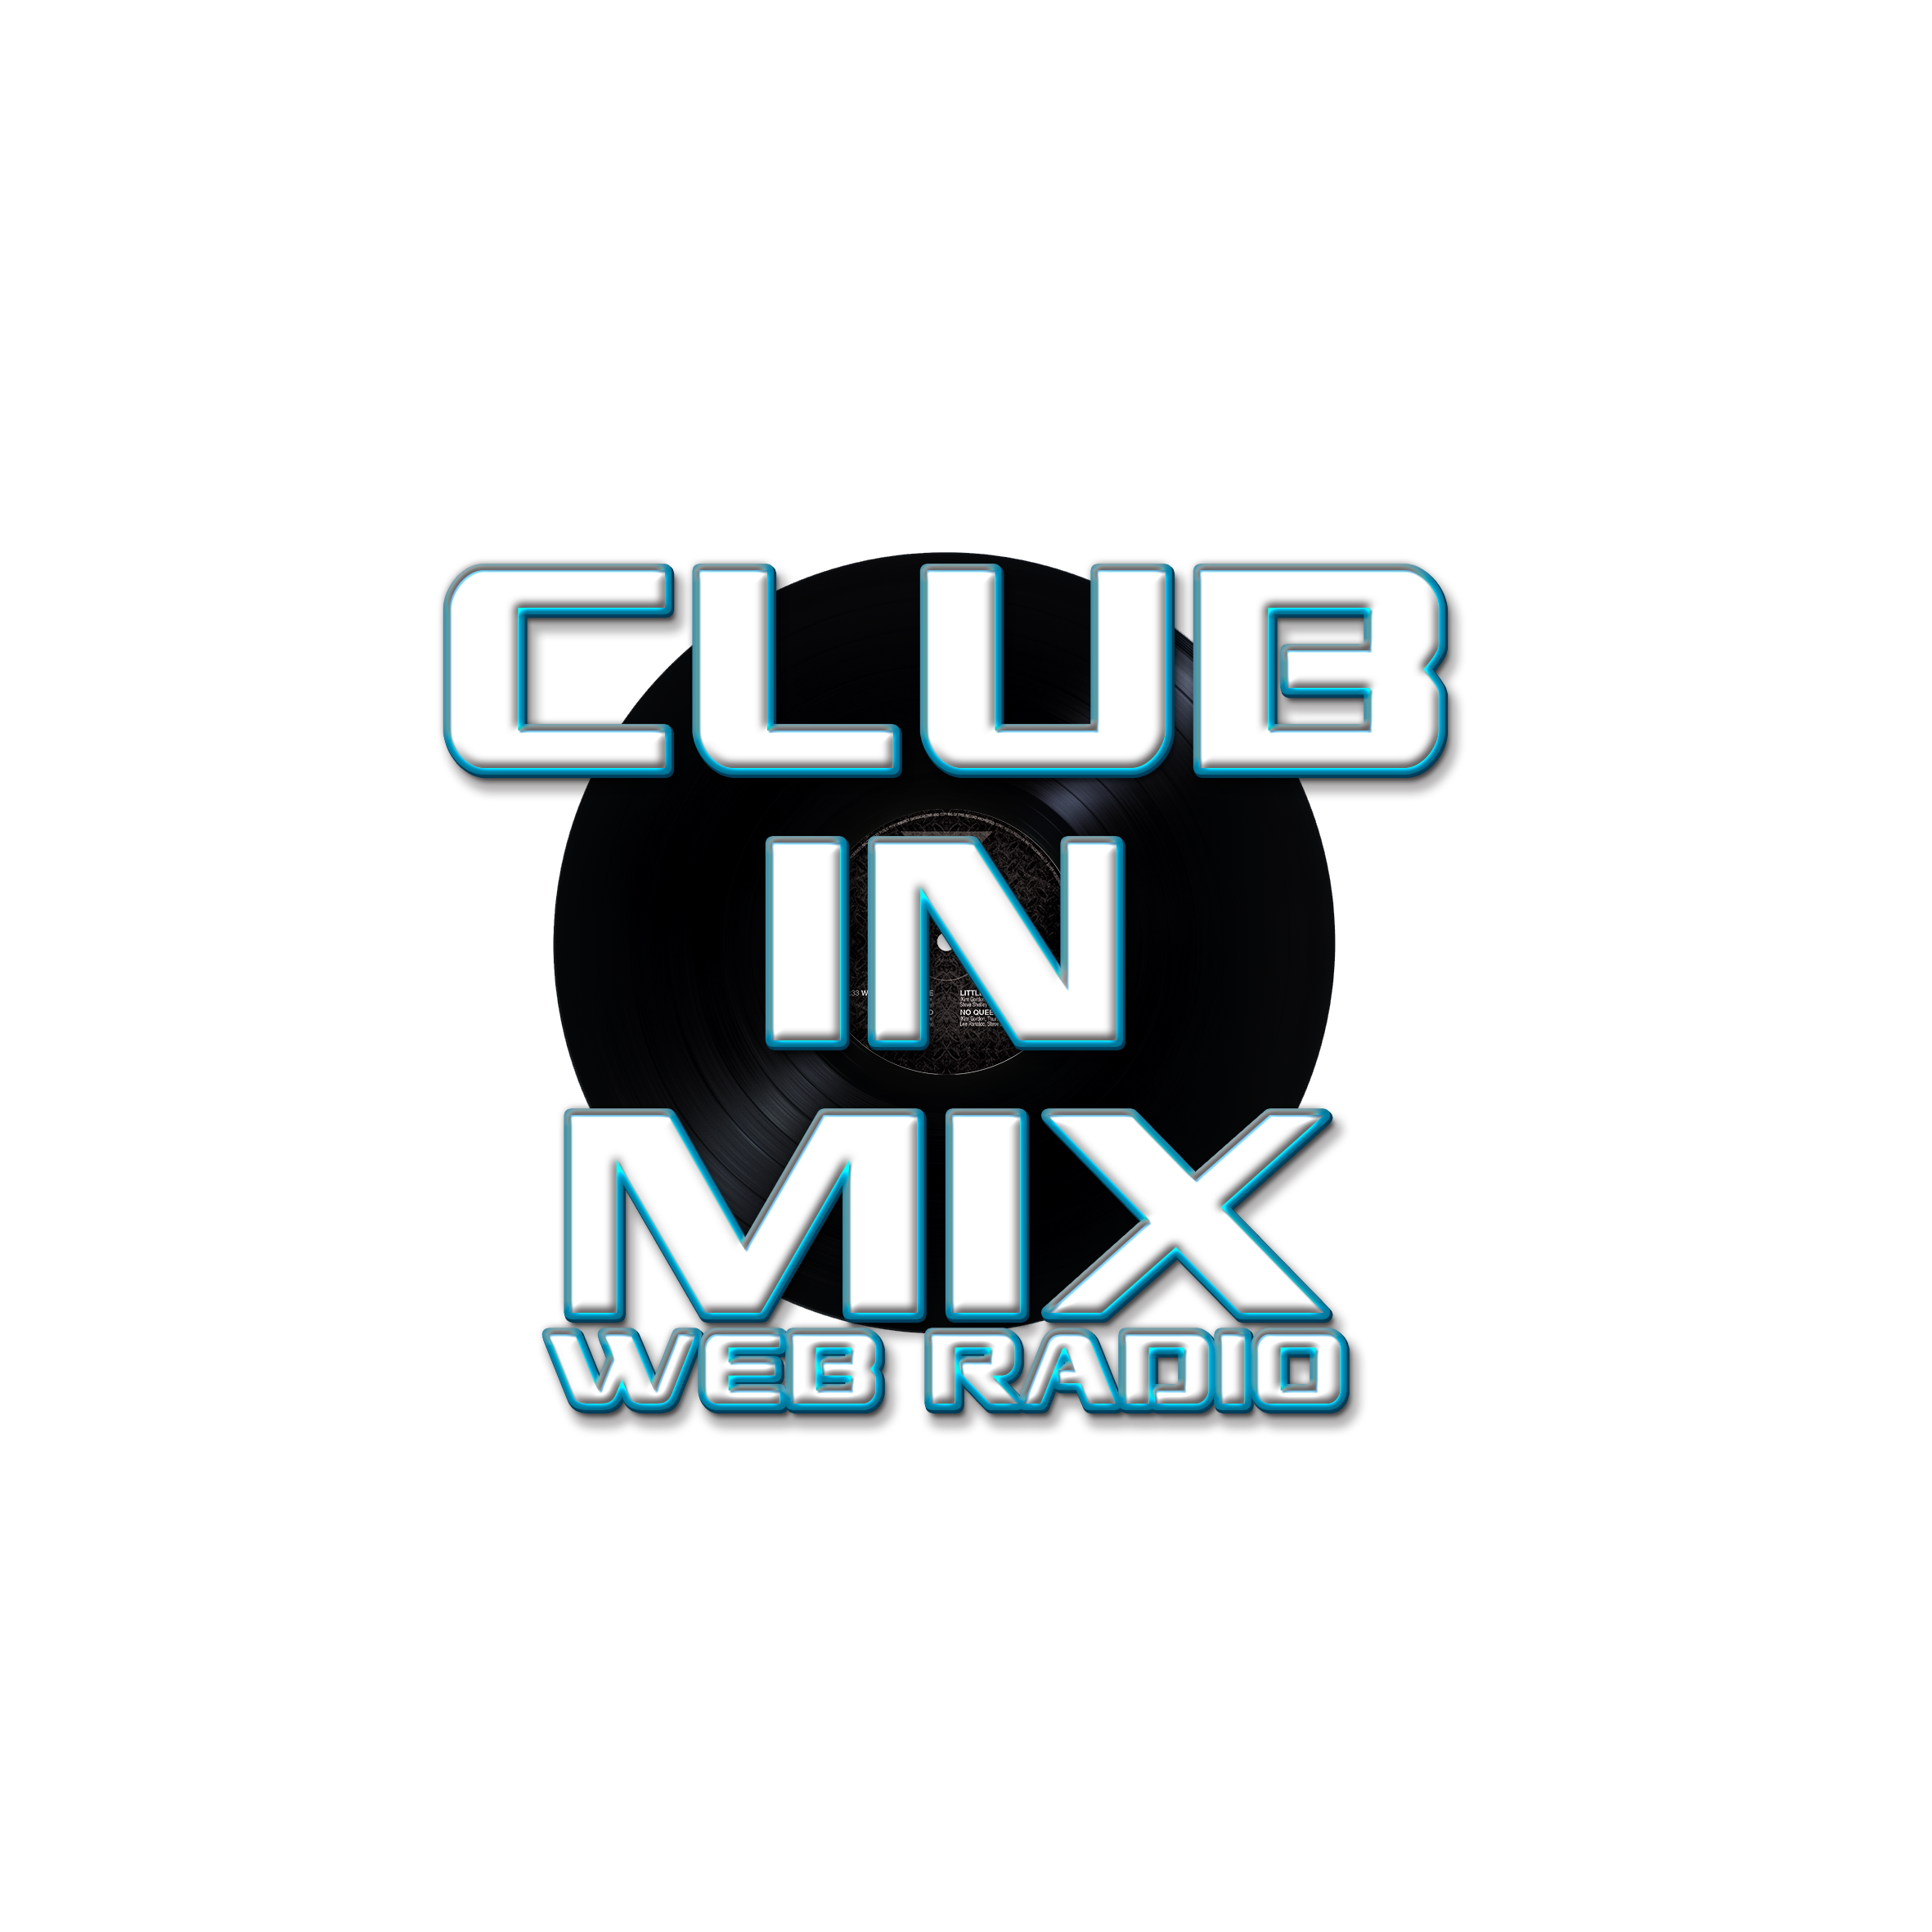 Club in mix web radio